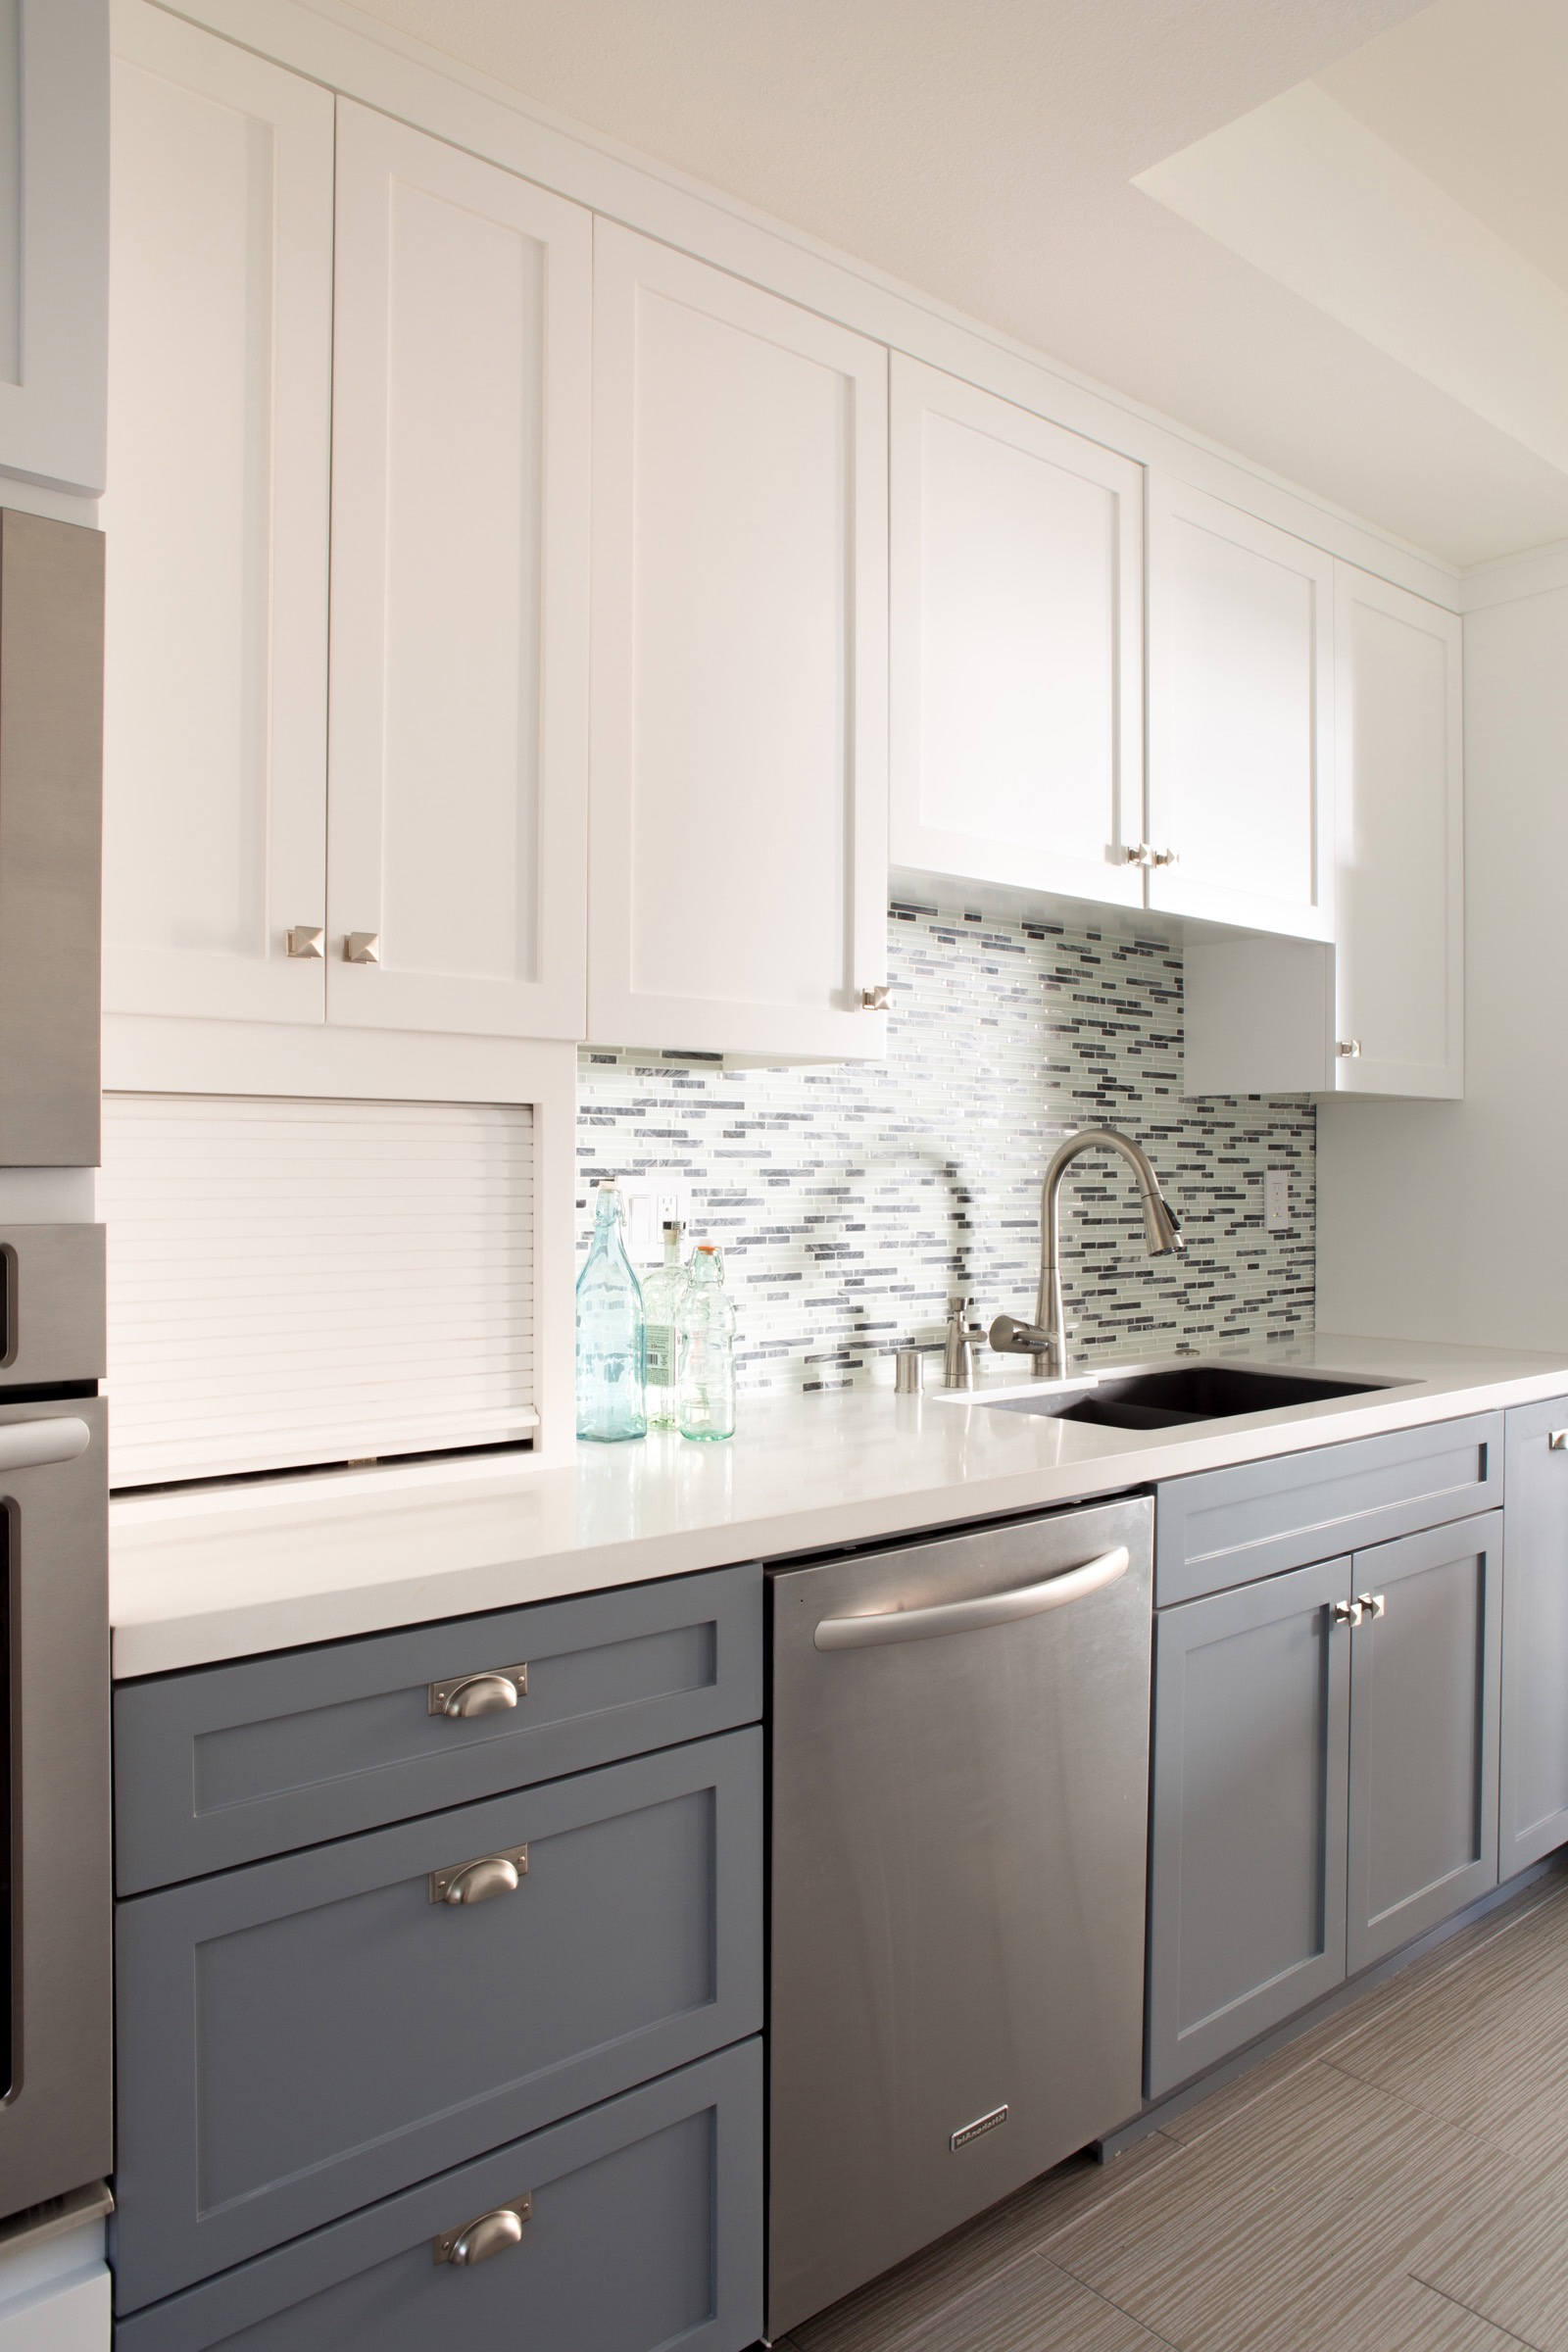 Two Toned Color Kitchen Cabinets (Image 14 of 18)